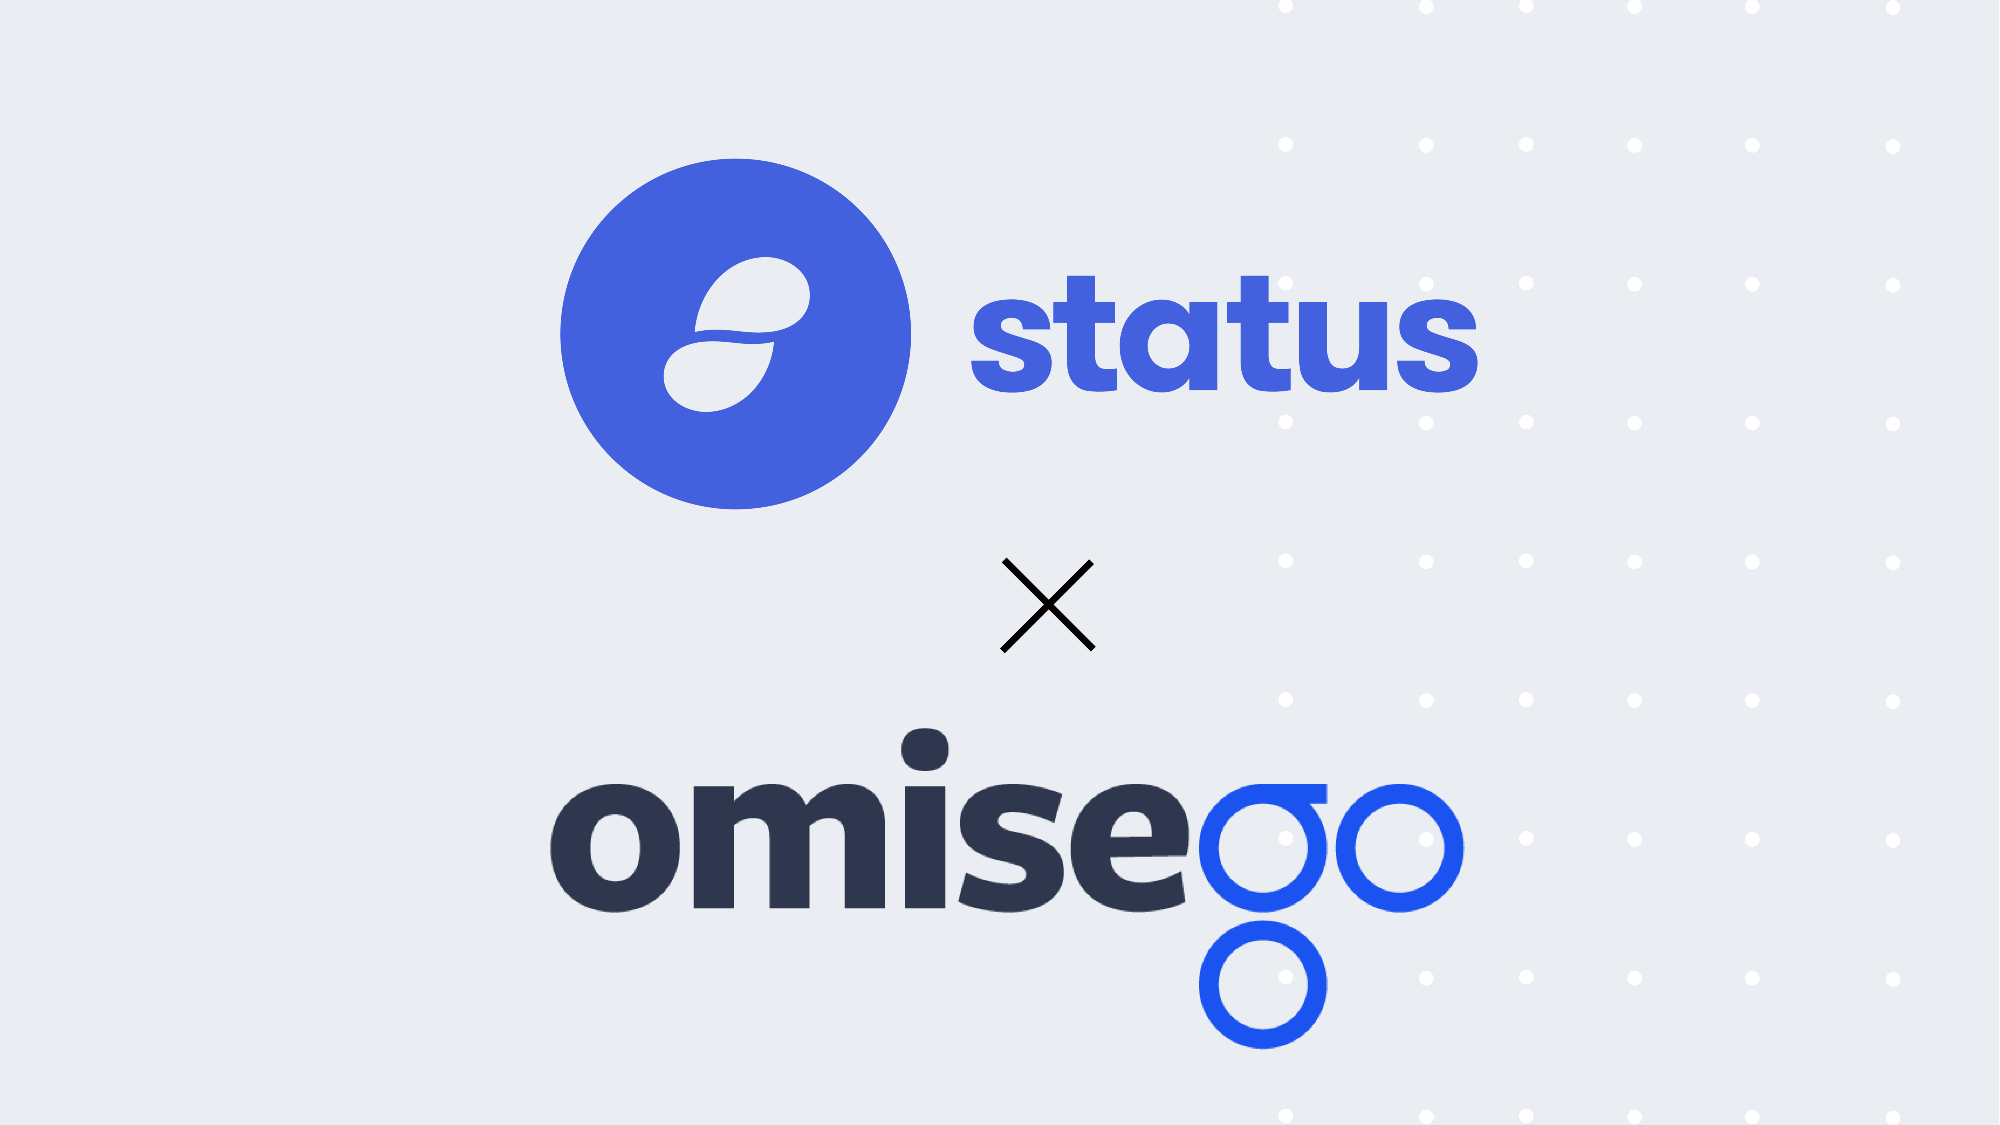 Omisego | OMG | Omisego Partners with Status | cryptocurrency updates